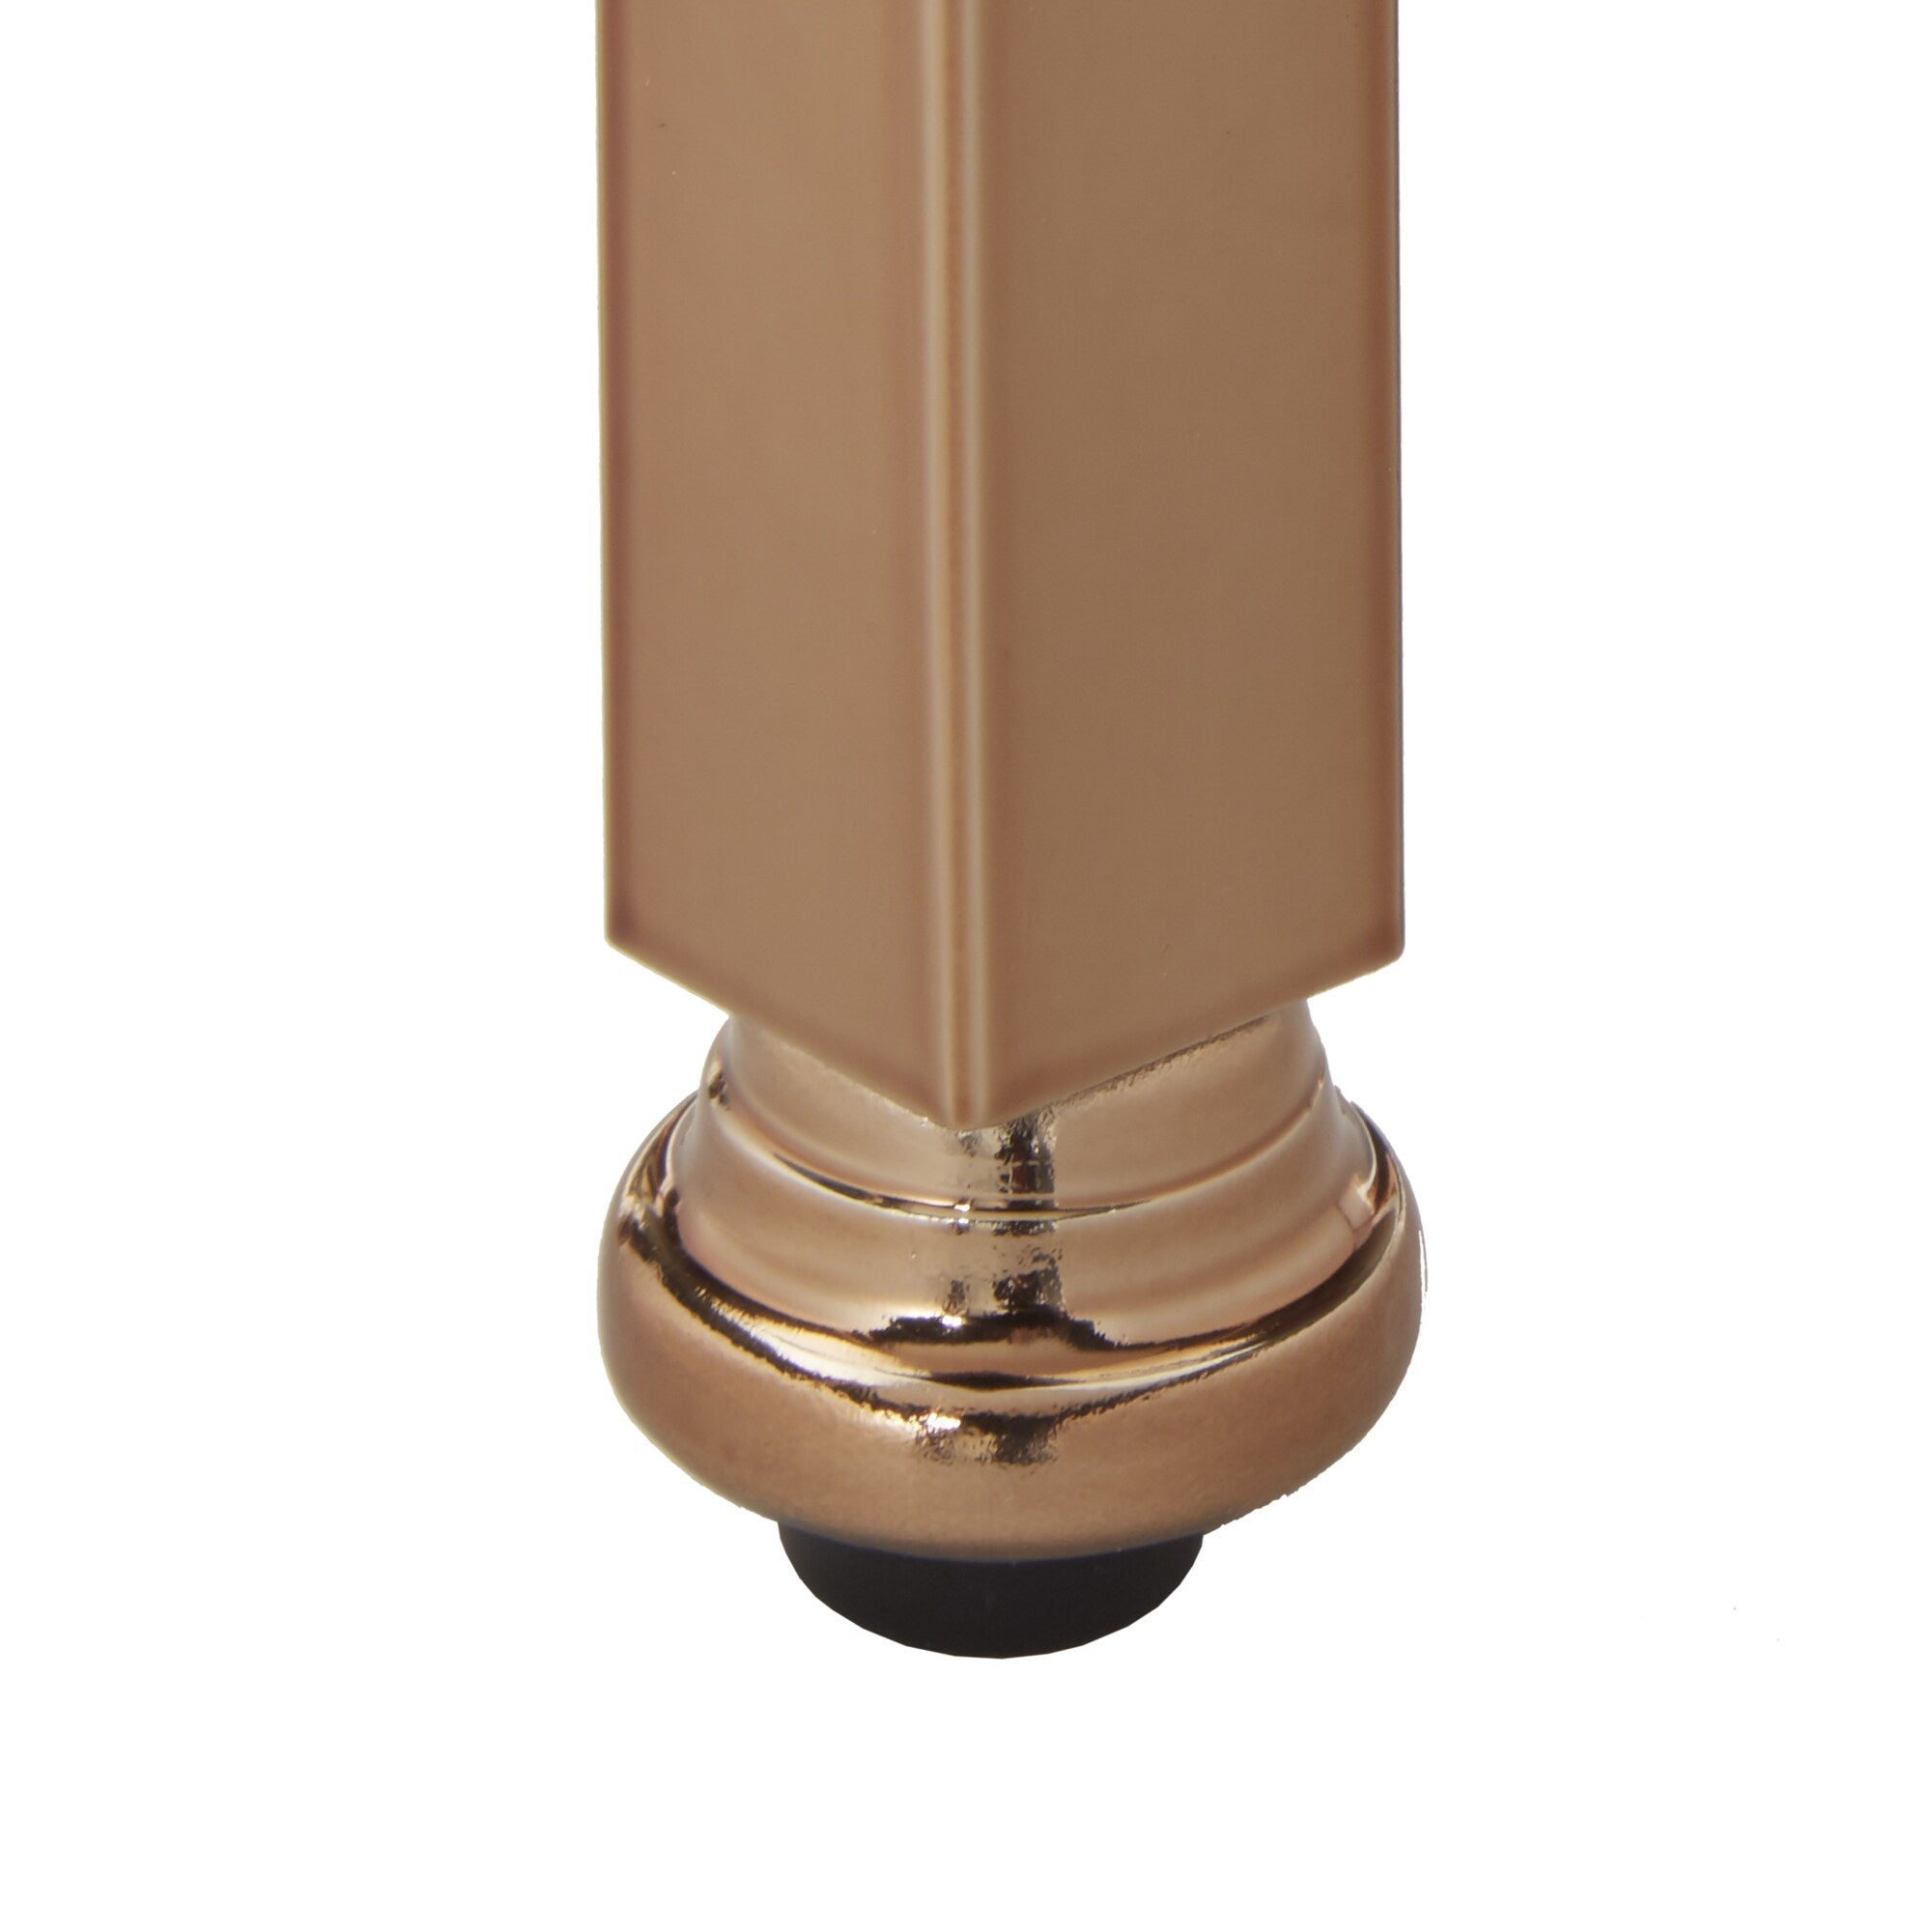 Mirror Trim End Table - Champagne Gold